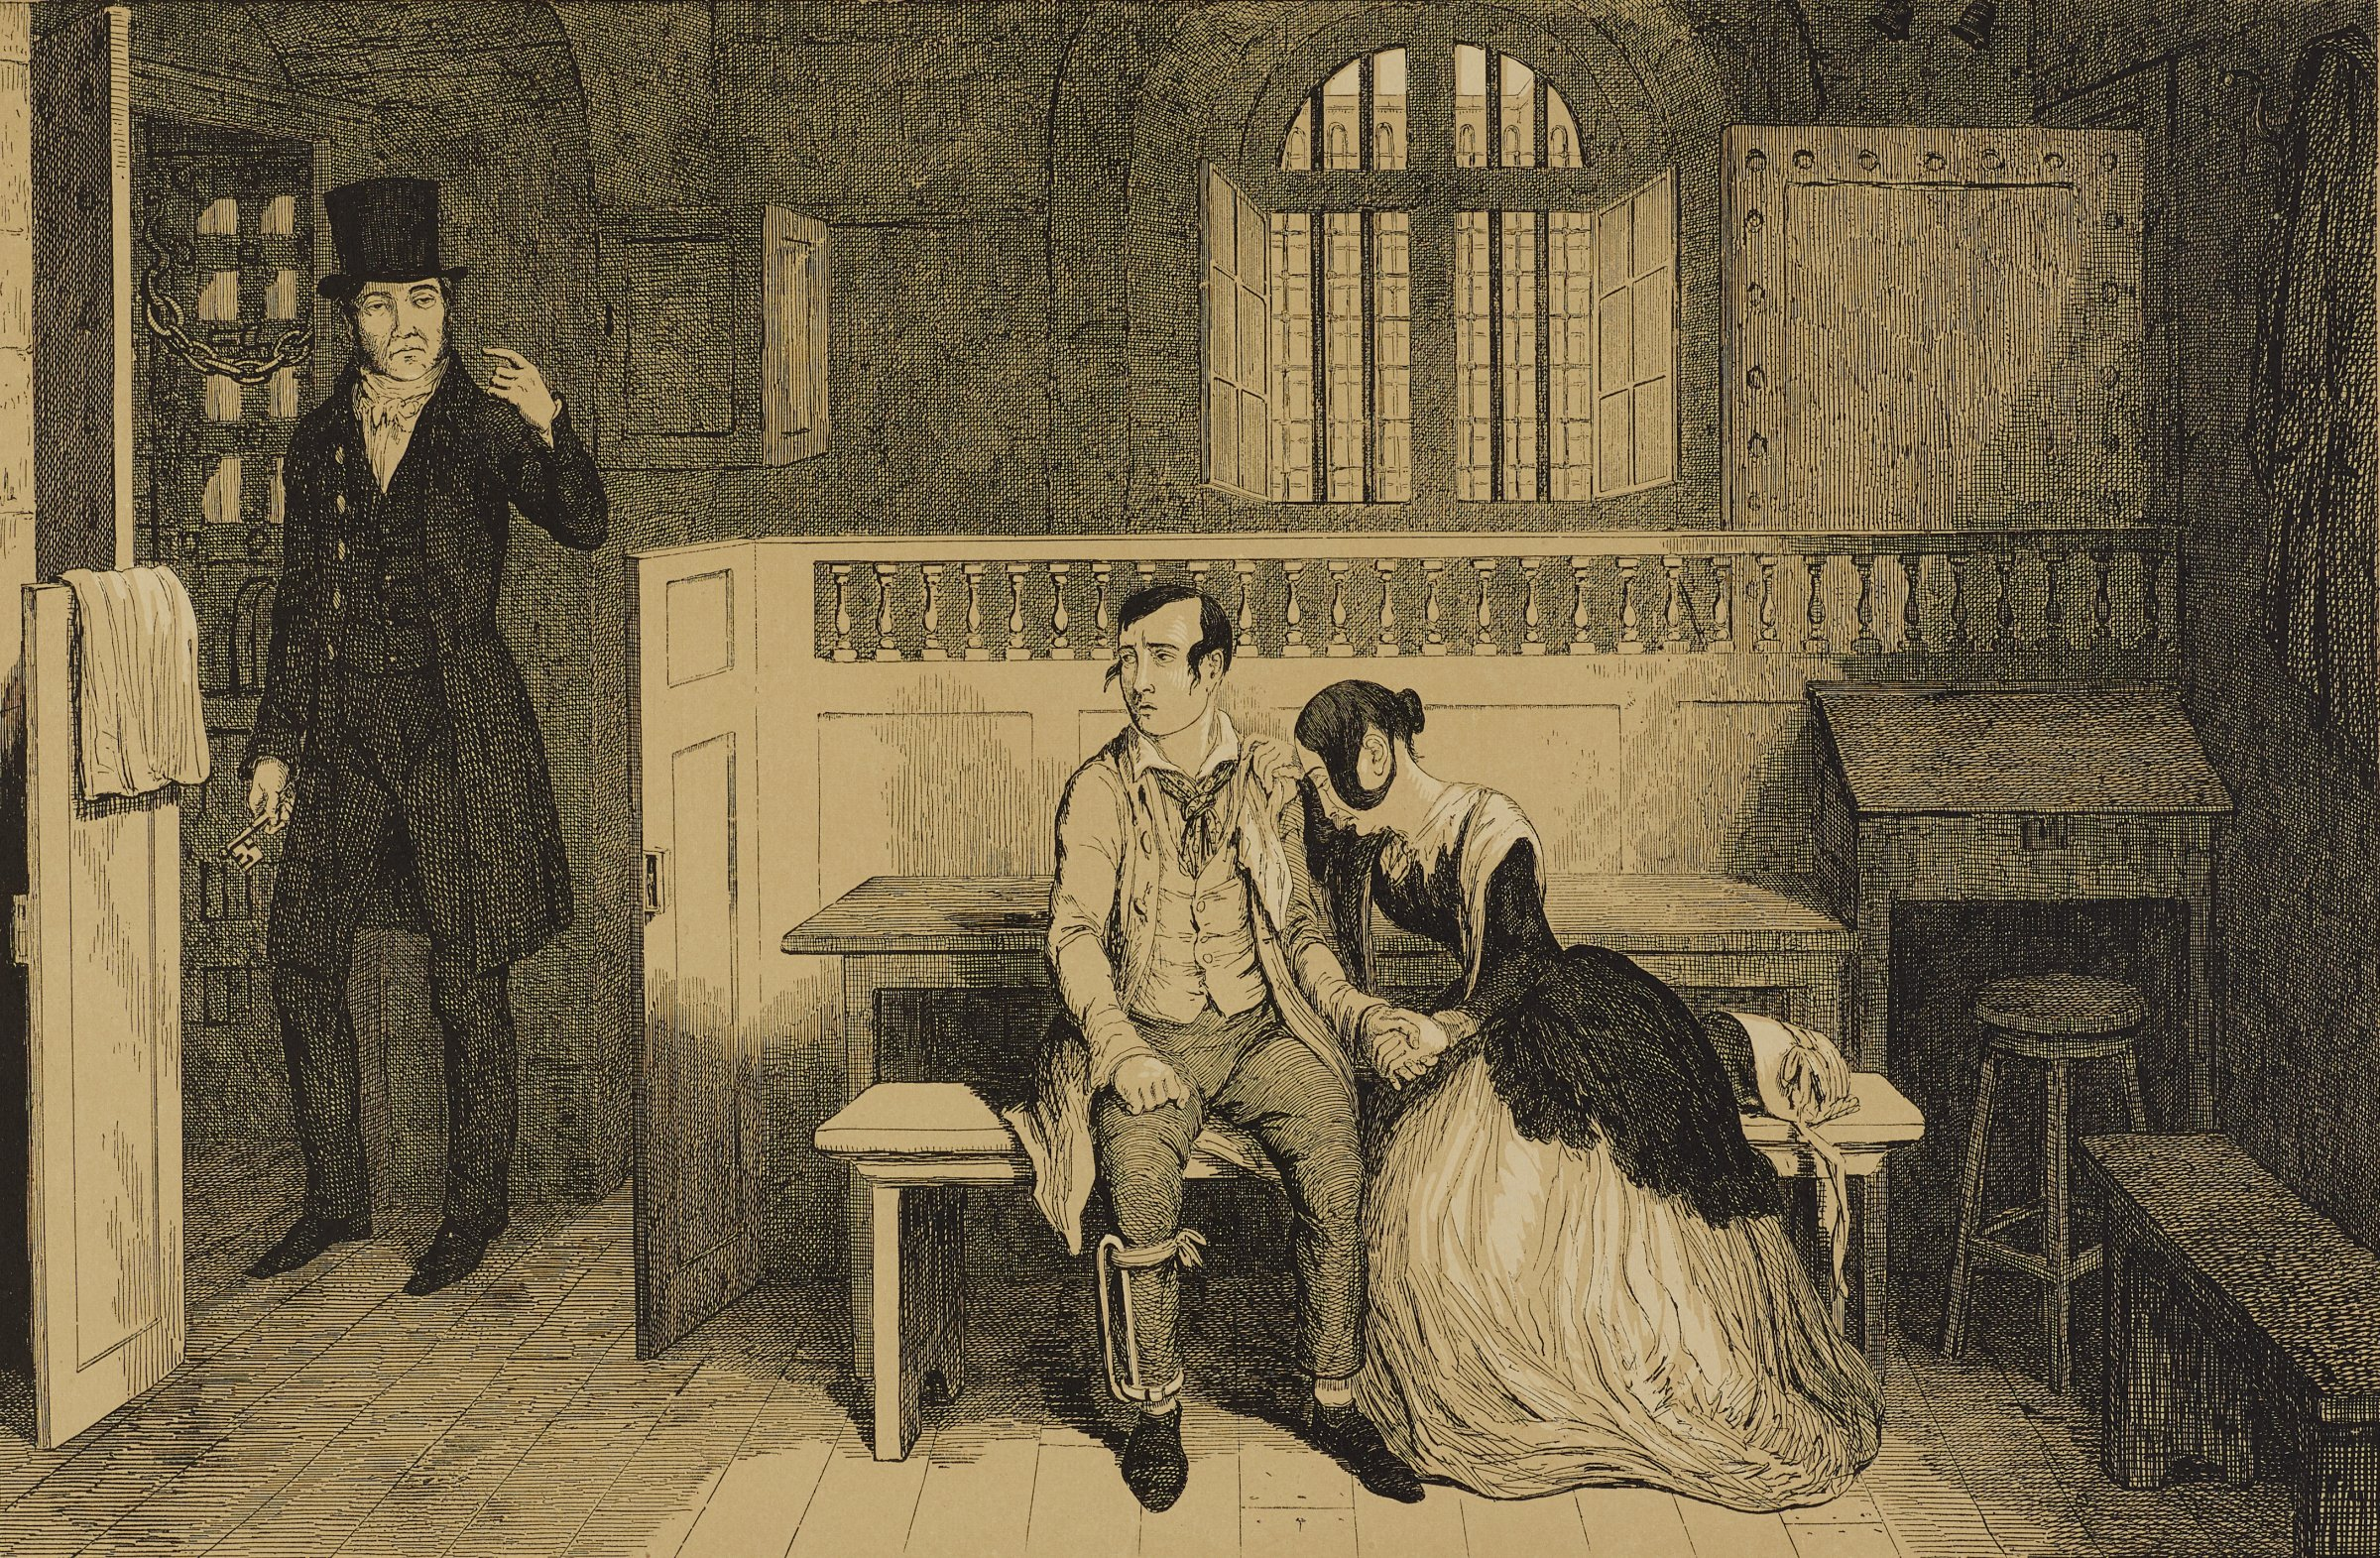 A young man sits on a bench looking towards a man standing at the door gesturing for him to follow. A young woman leans her head on the young man's shoulder and cries.